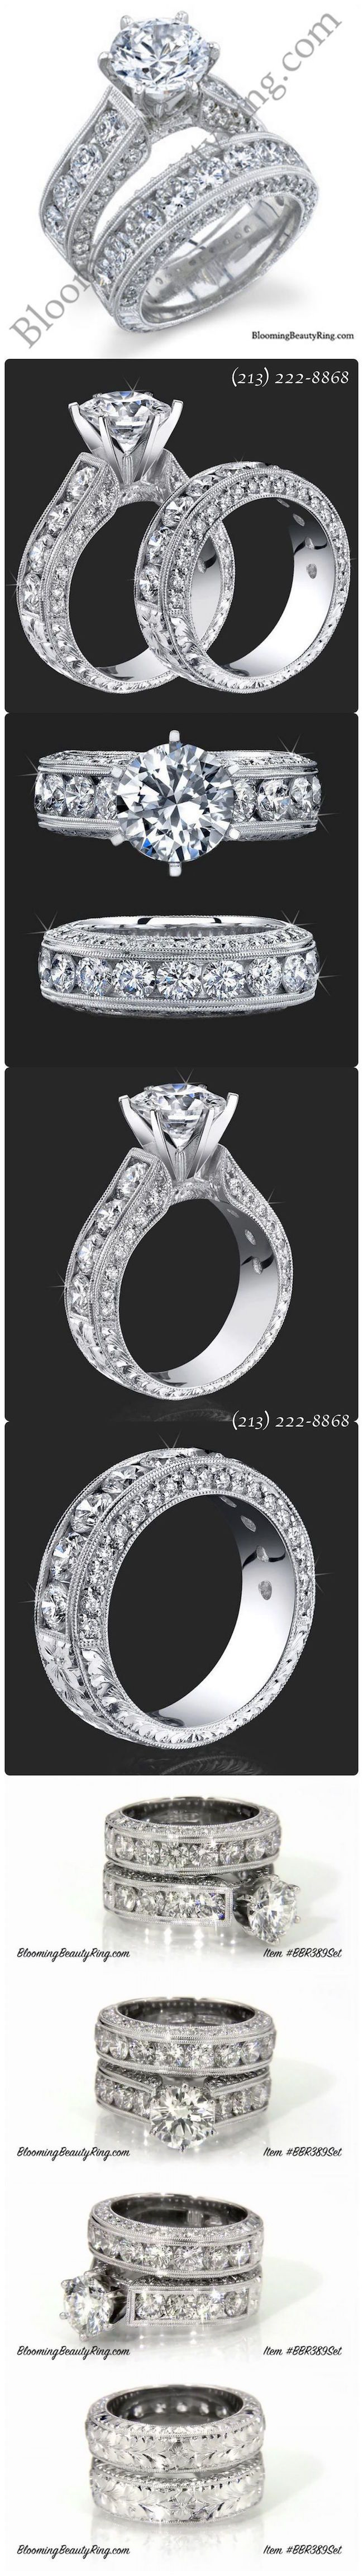 All of our engagement rings are handmade and we are able to offer them in any metal you choose including White Gold, Yellow Gold, Rose Gold, Platinum, Palladium, 14k & 18k Gold.  Since we design and make all of our own settings, call us if you would like to make any changes to the design.  Be sure to watch the video of this ring on our website! --->>>  BloomingBeautyRing.com  (213) 222-8868